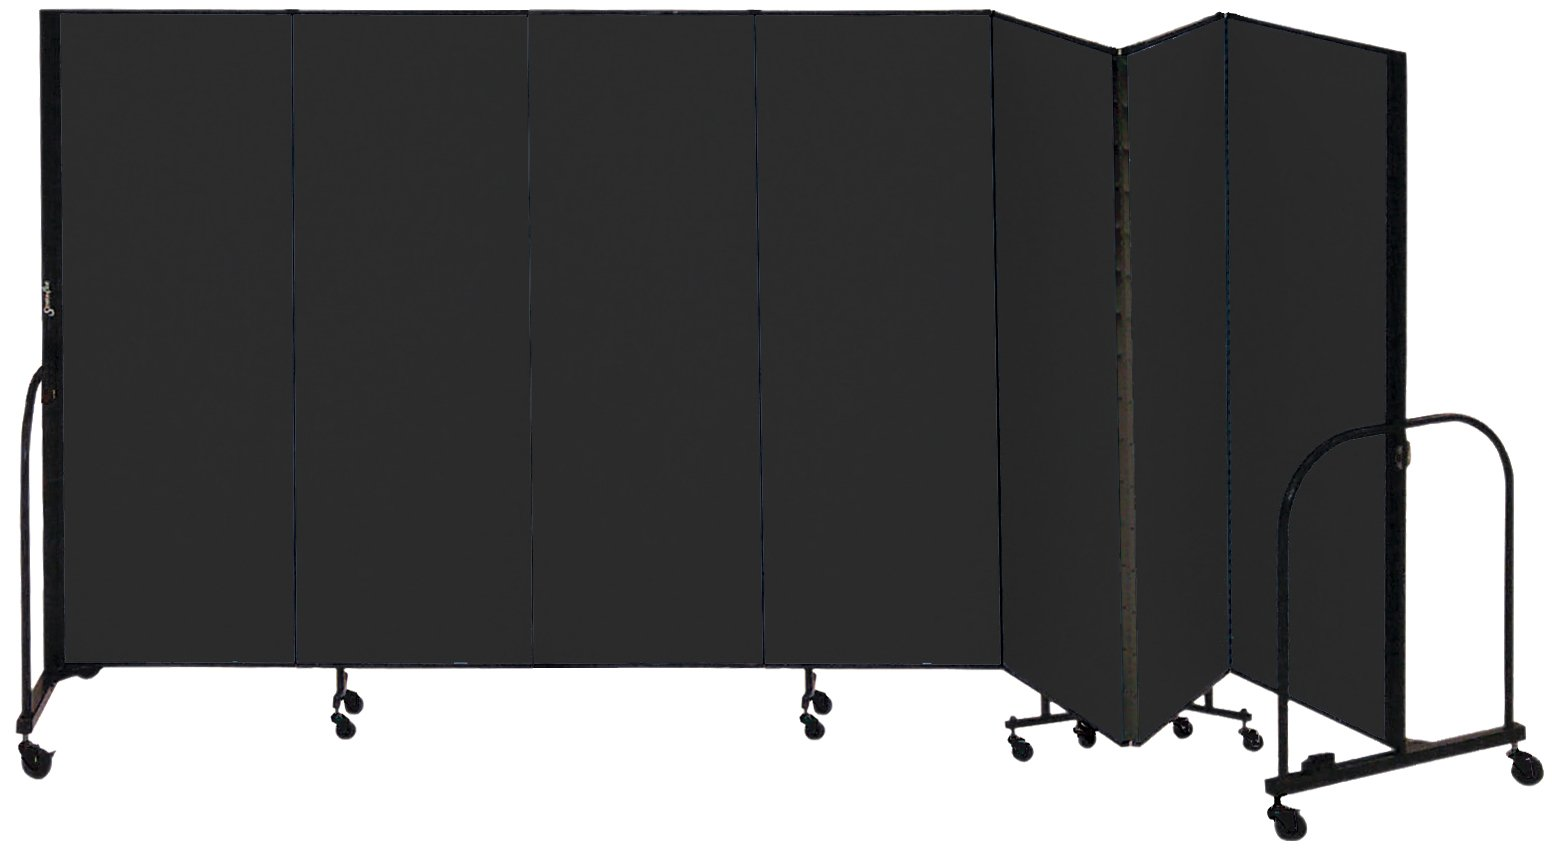 Screenflex Commercial Portable Room Divider (CFSL607-DX) 6 Feet High by 13 Feet 1 Inches Long, Designer Black Fabric